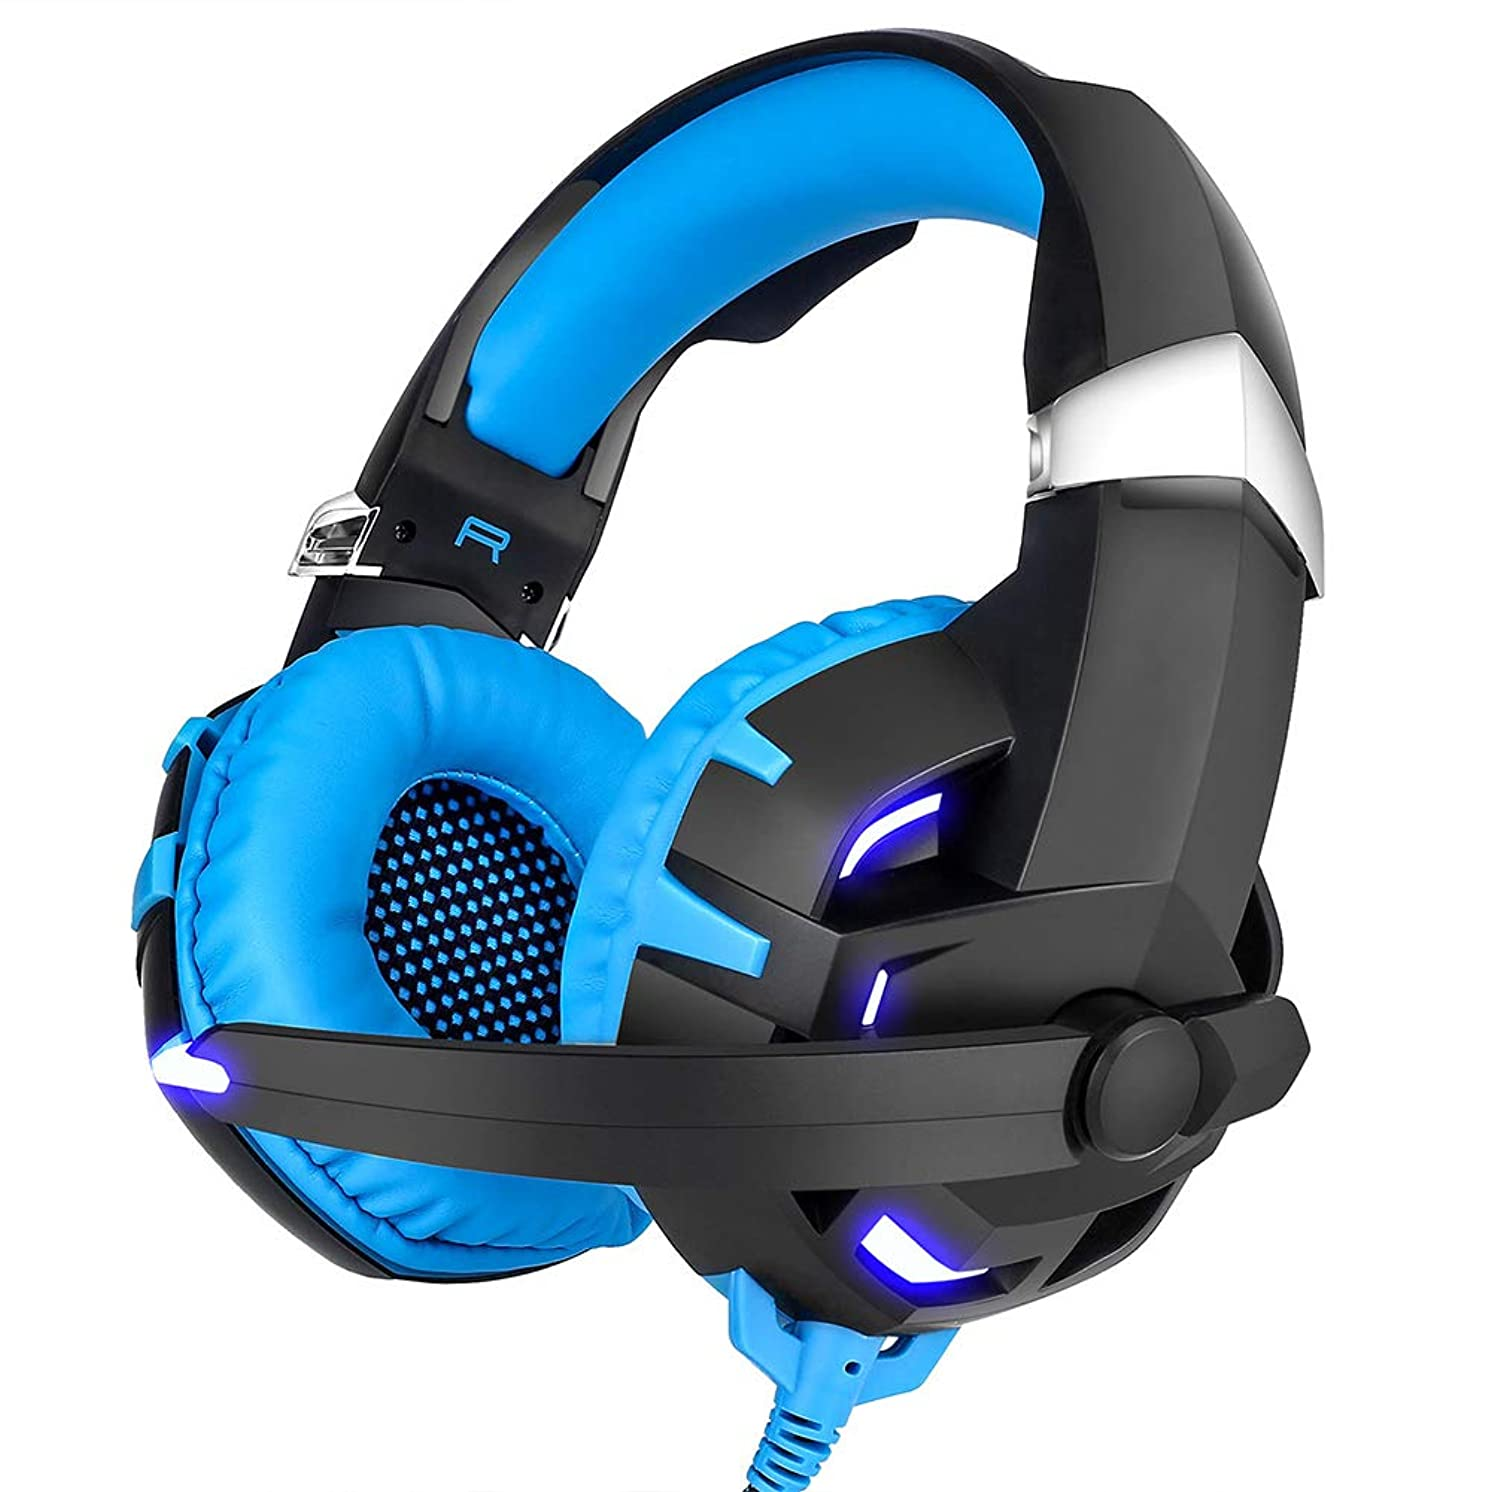 owhelmlqff K2 7.1 Surround Sound Gaming Headset Wired Headphones for PS4 Xbox One Computer Blue